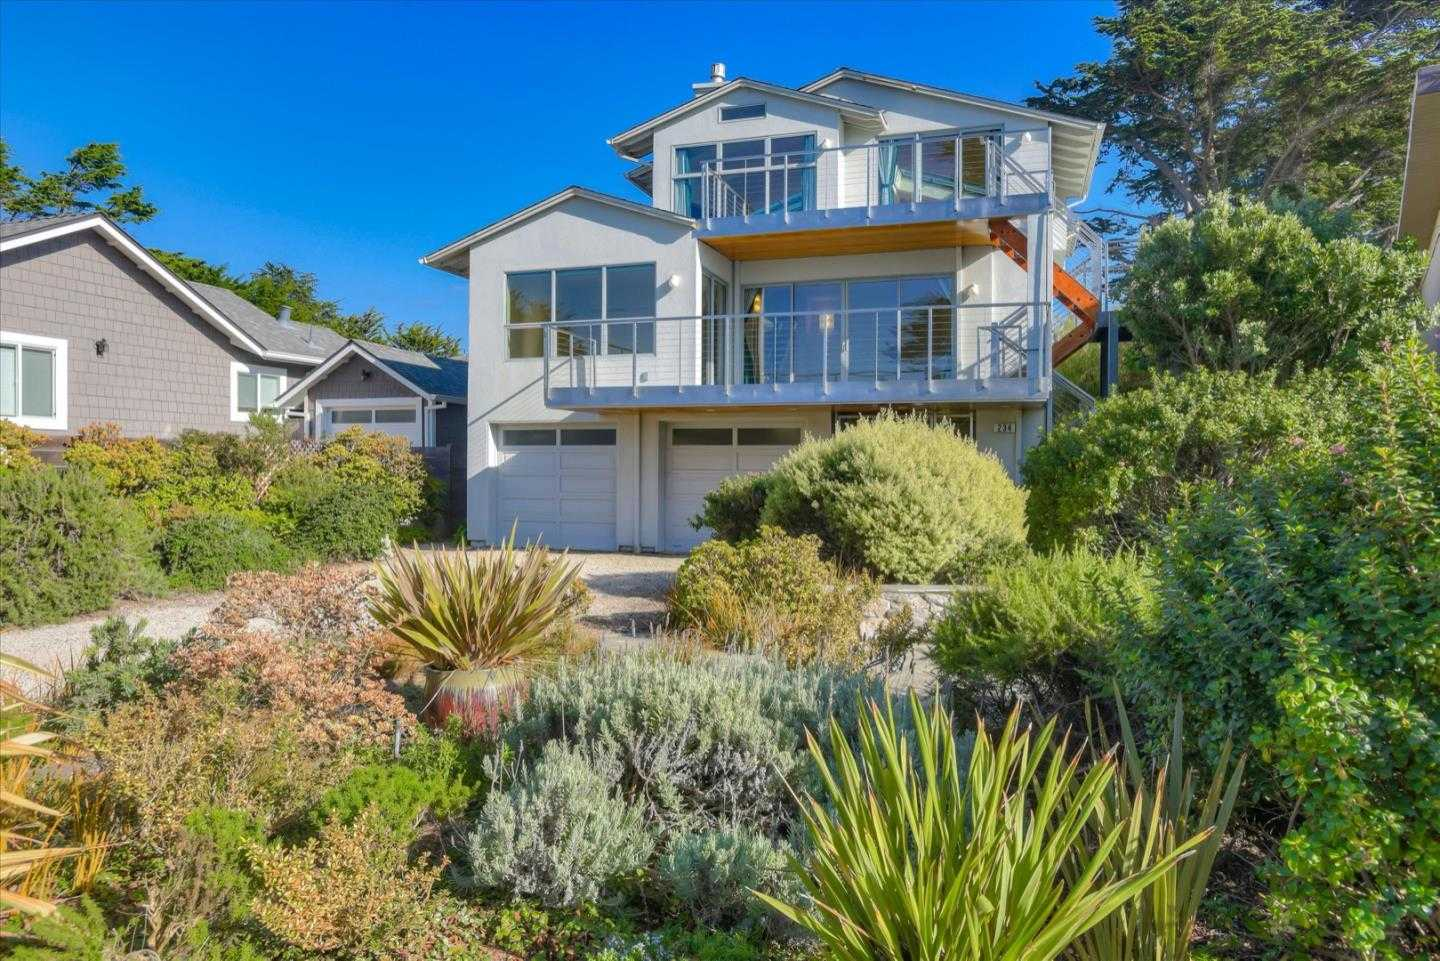 $1,970,000 - 3Br/3Ba -  for Sale in Moss Beach